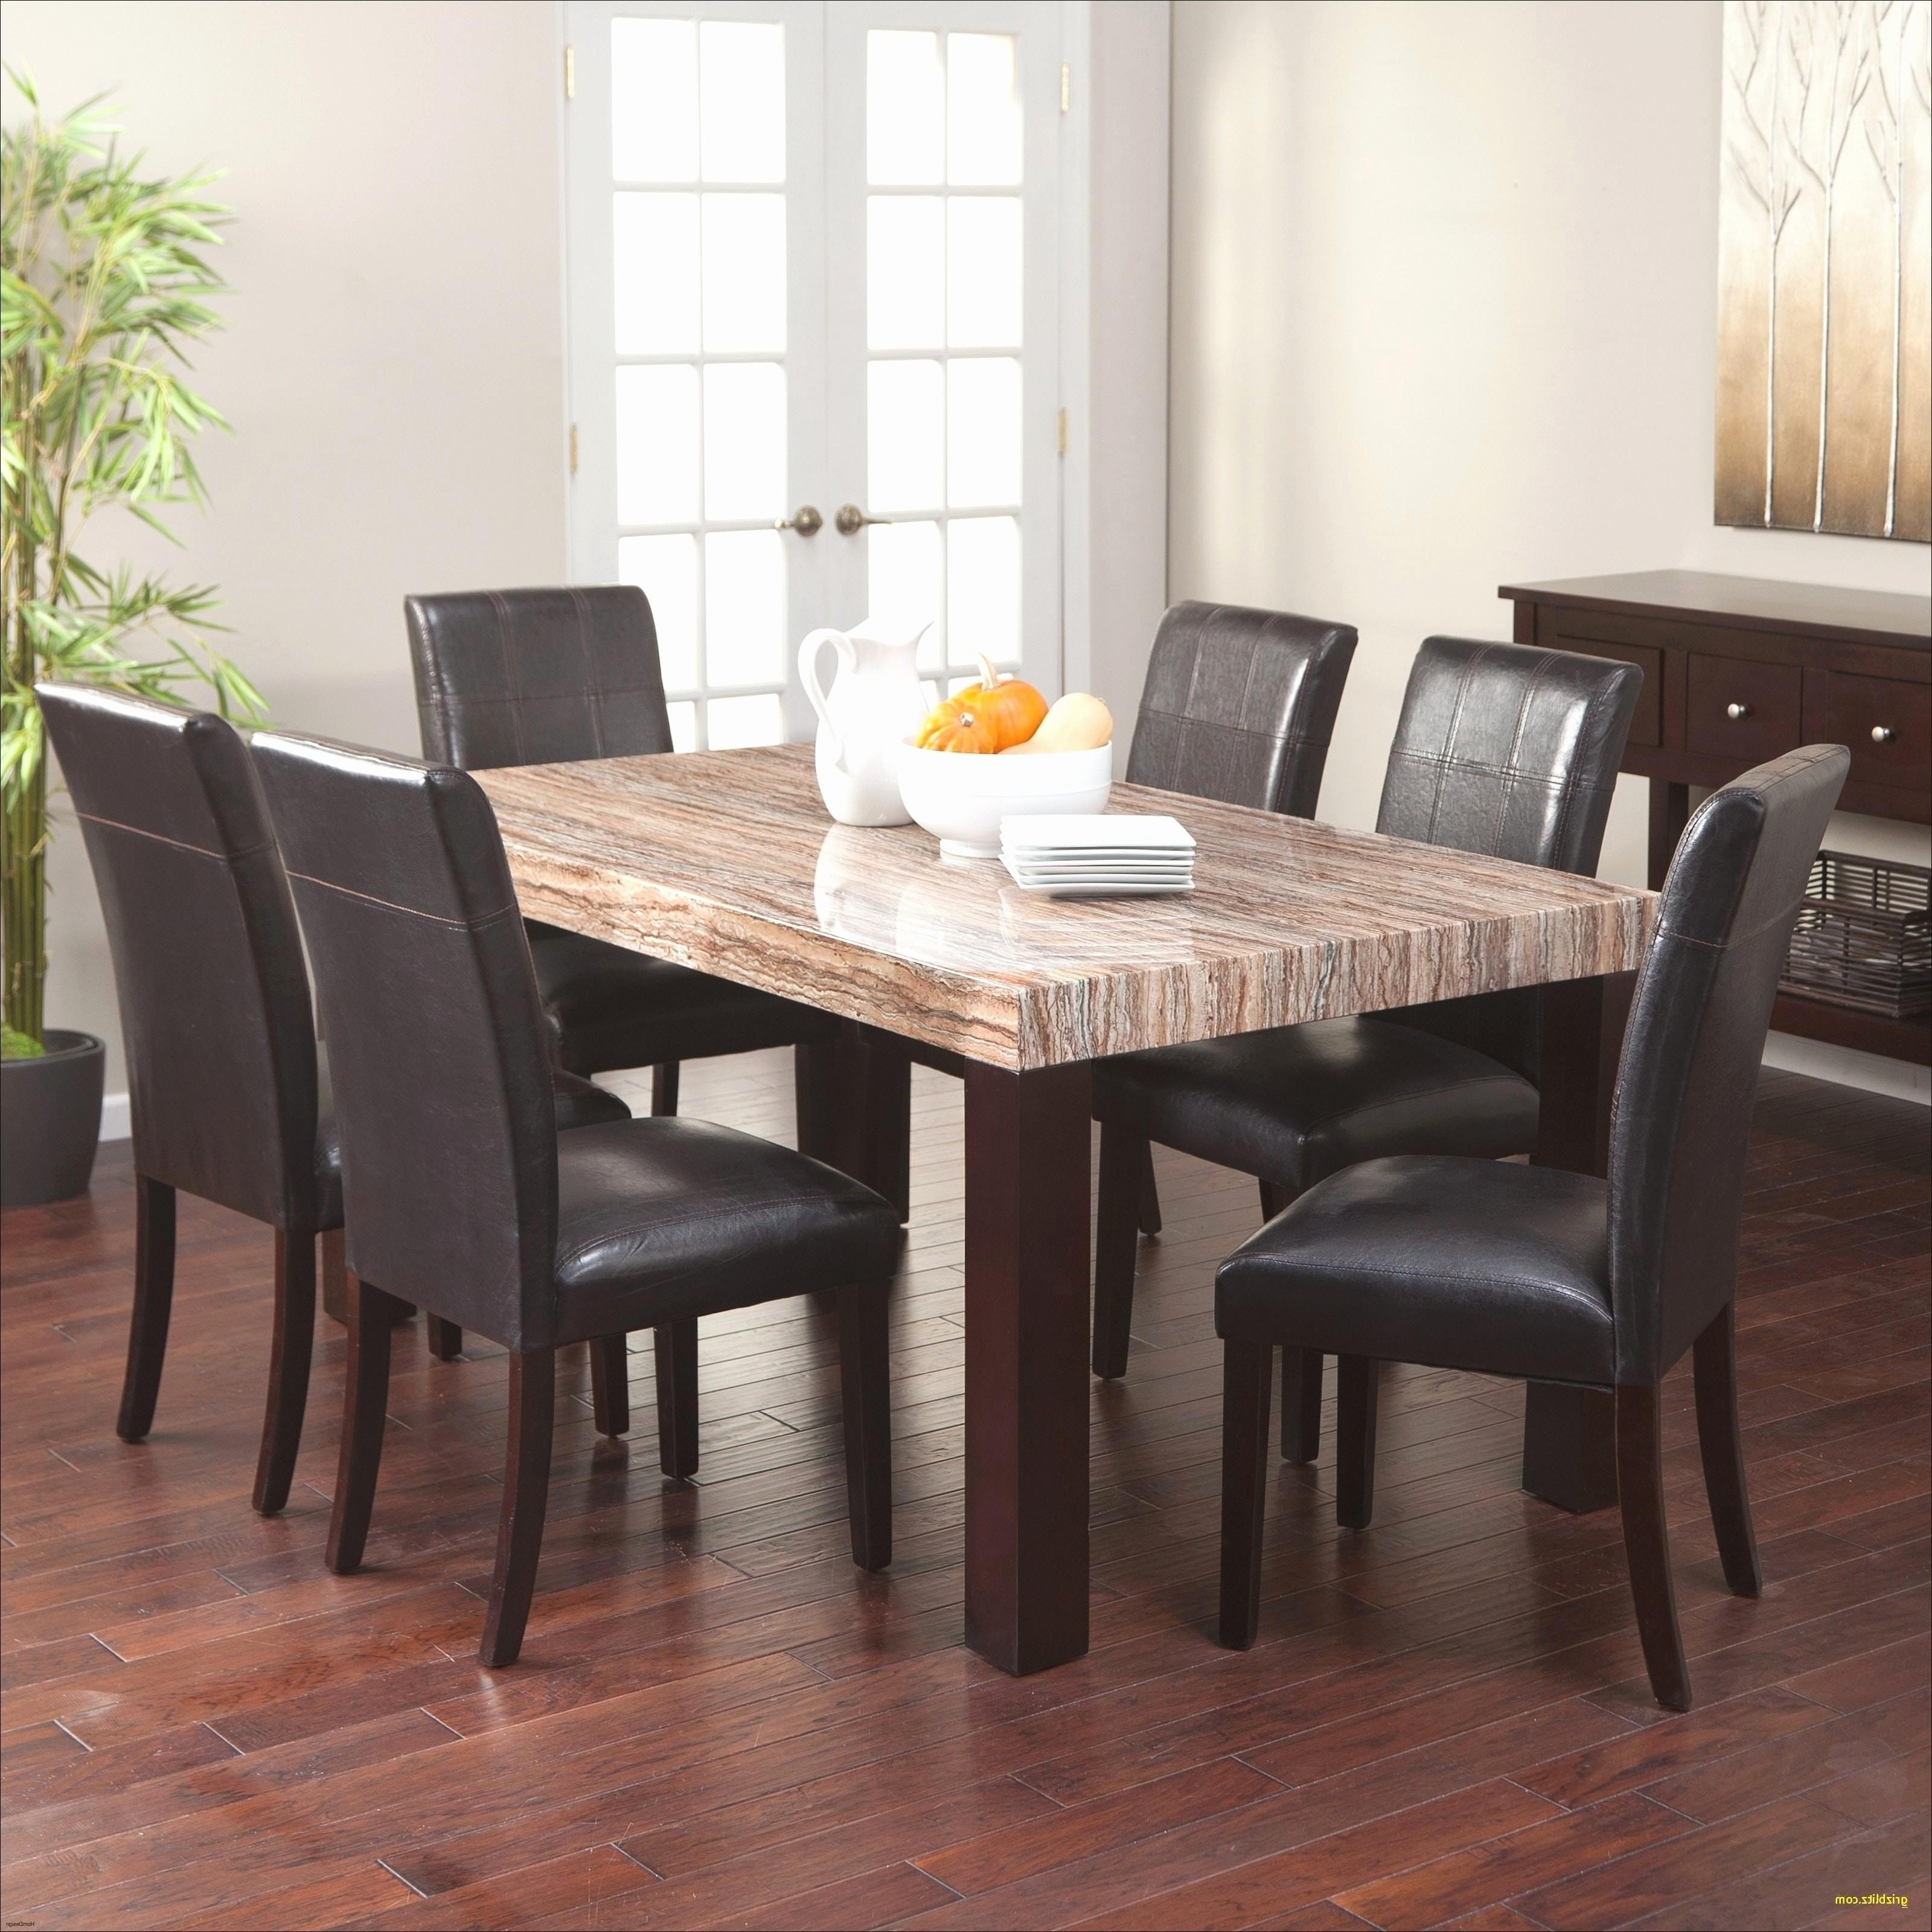 Wooden Glass Dining Tables Pertaining To Best And Newest Round Glass Dining Table Sets For 4 Luxury Rectangular Glass Dining (View 23 of 25)